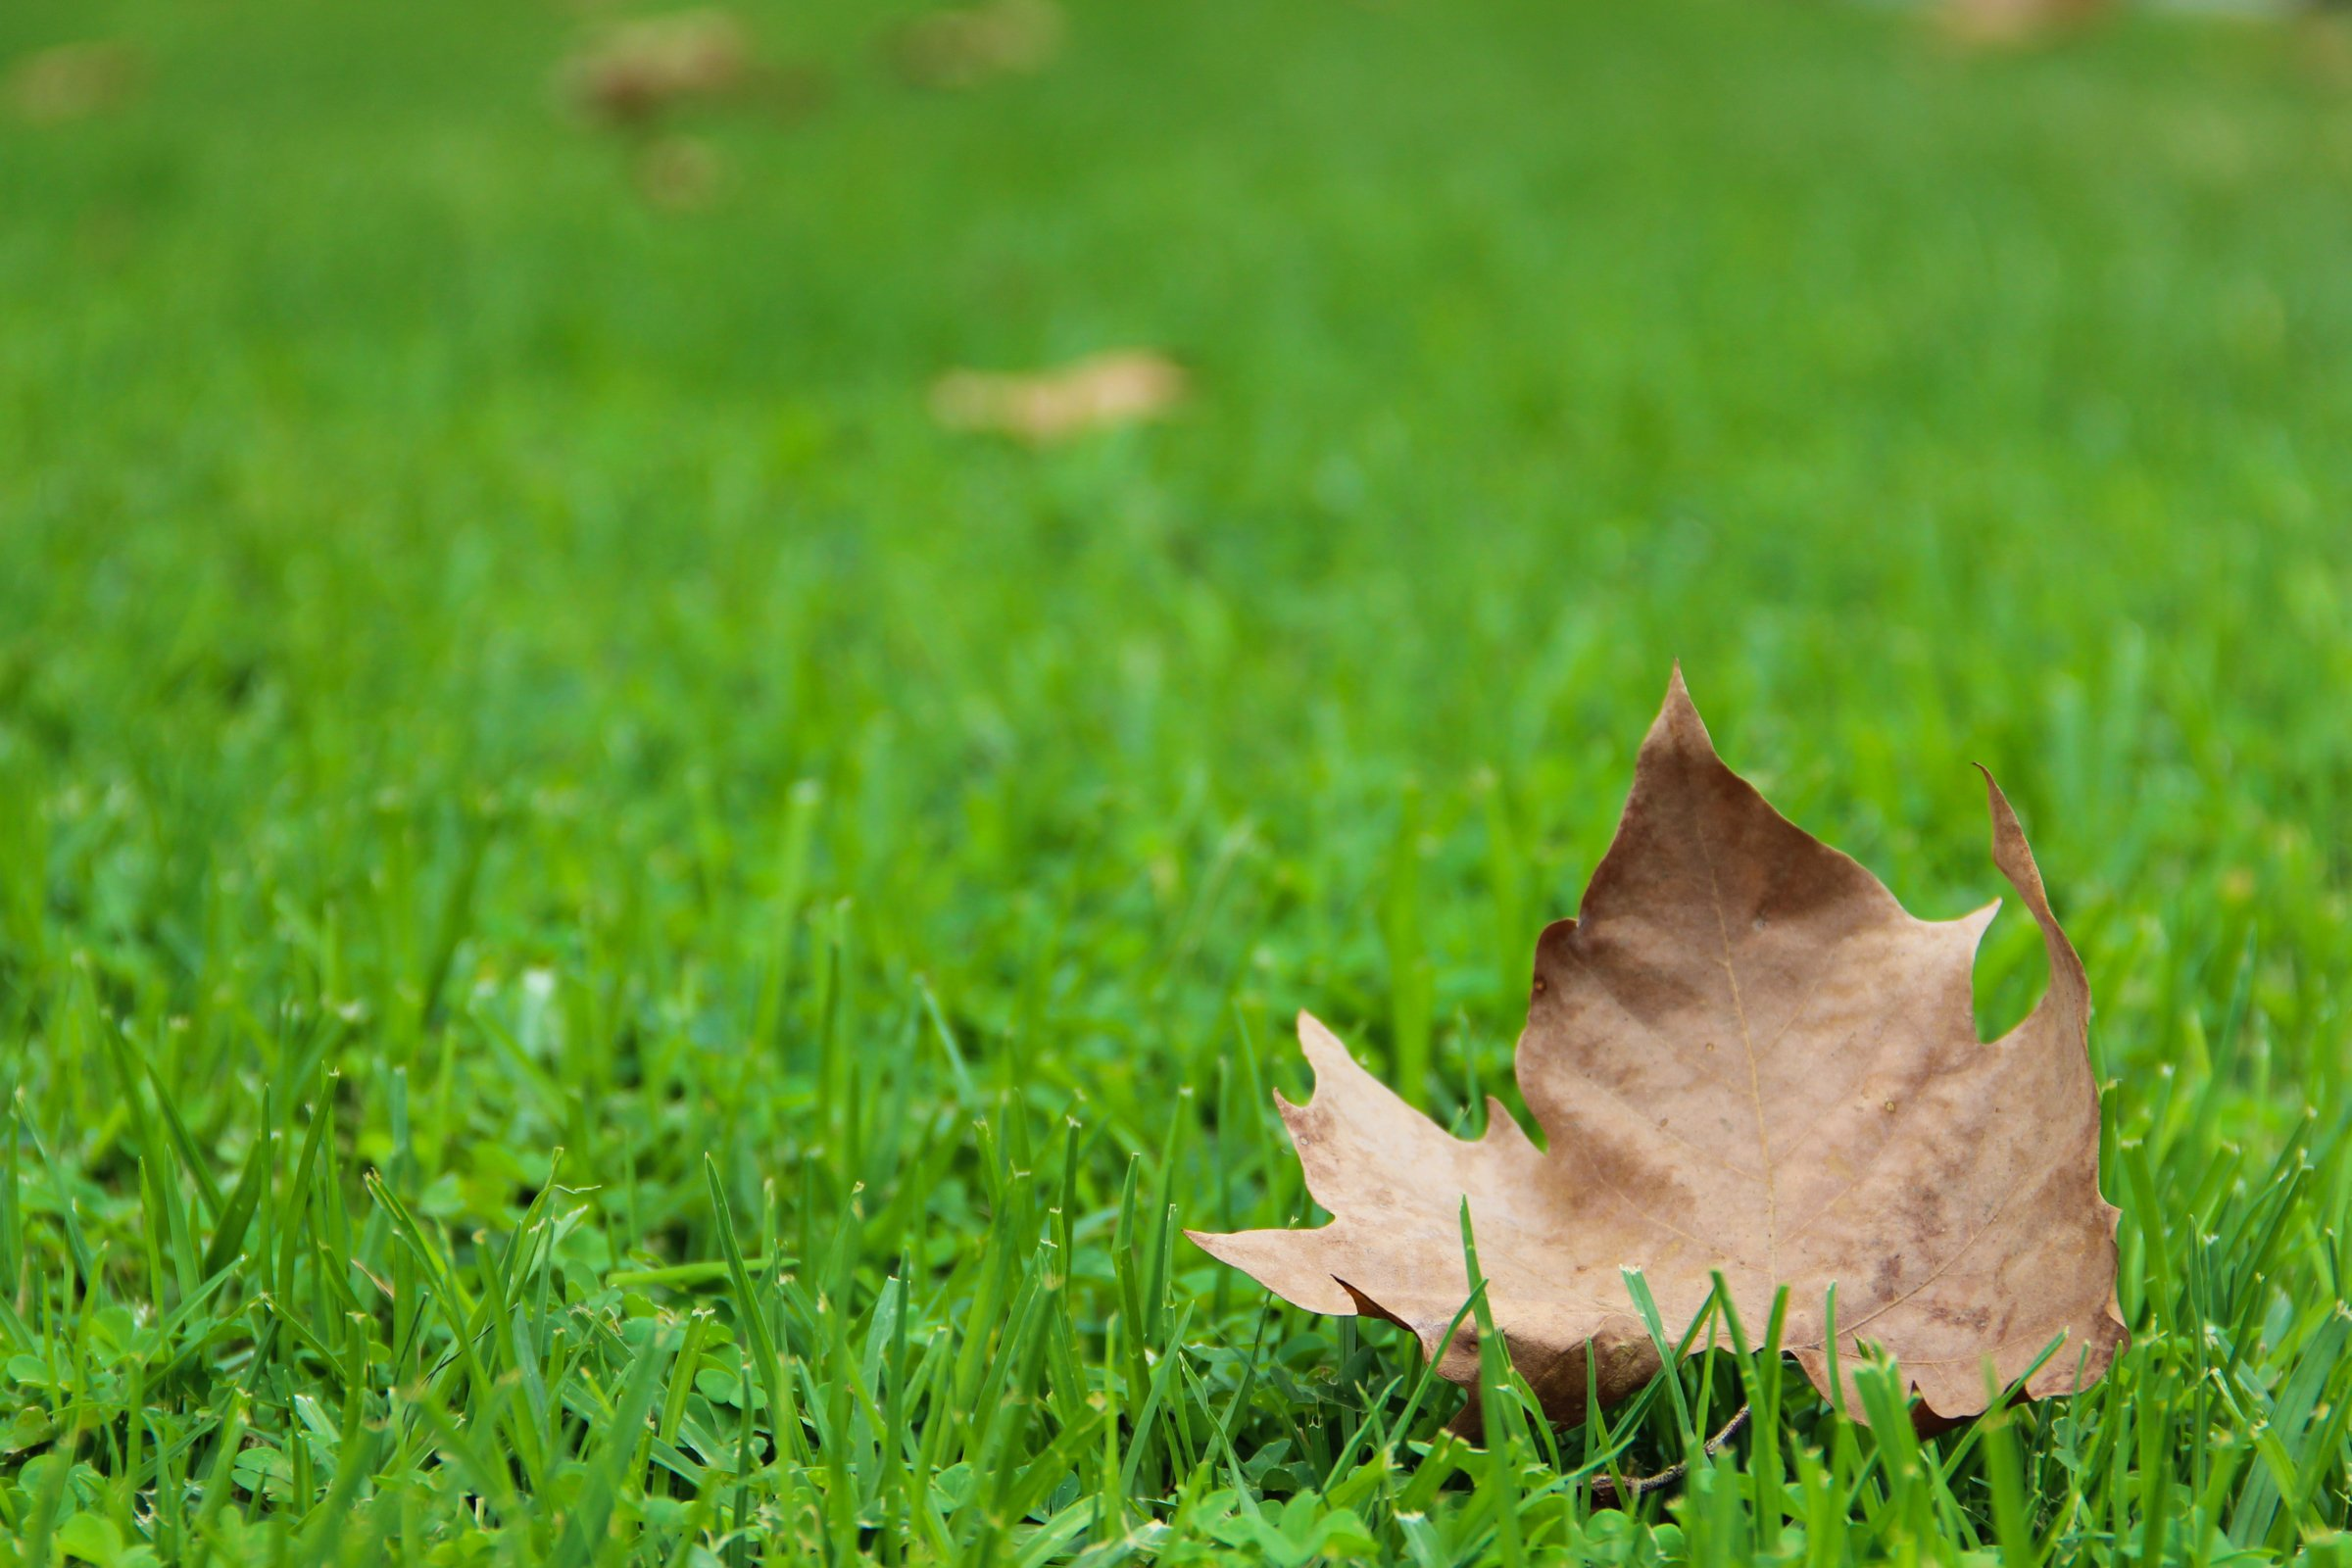 Dry Autumn Leaf On Green Grass